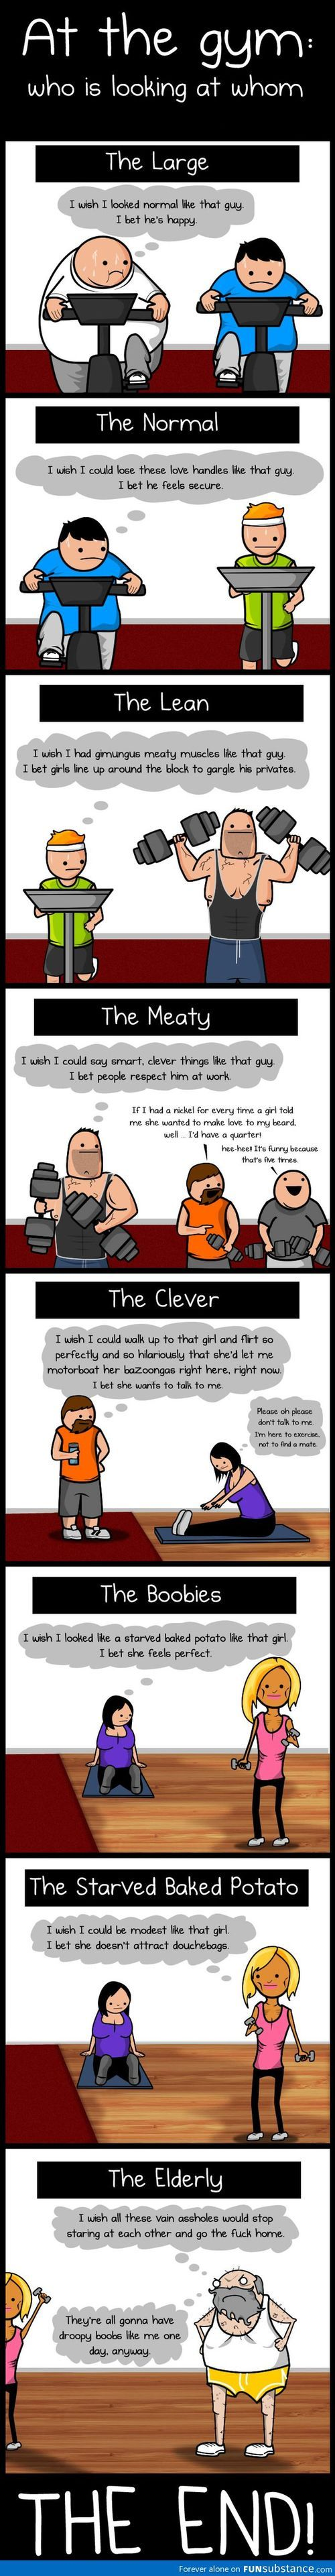 Totally the gym. That old guy is totally Chuck, too. Don't you agree, Rec Center friends!?